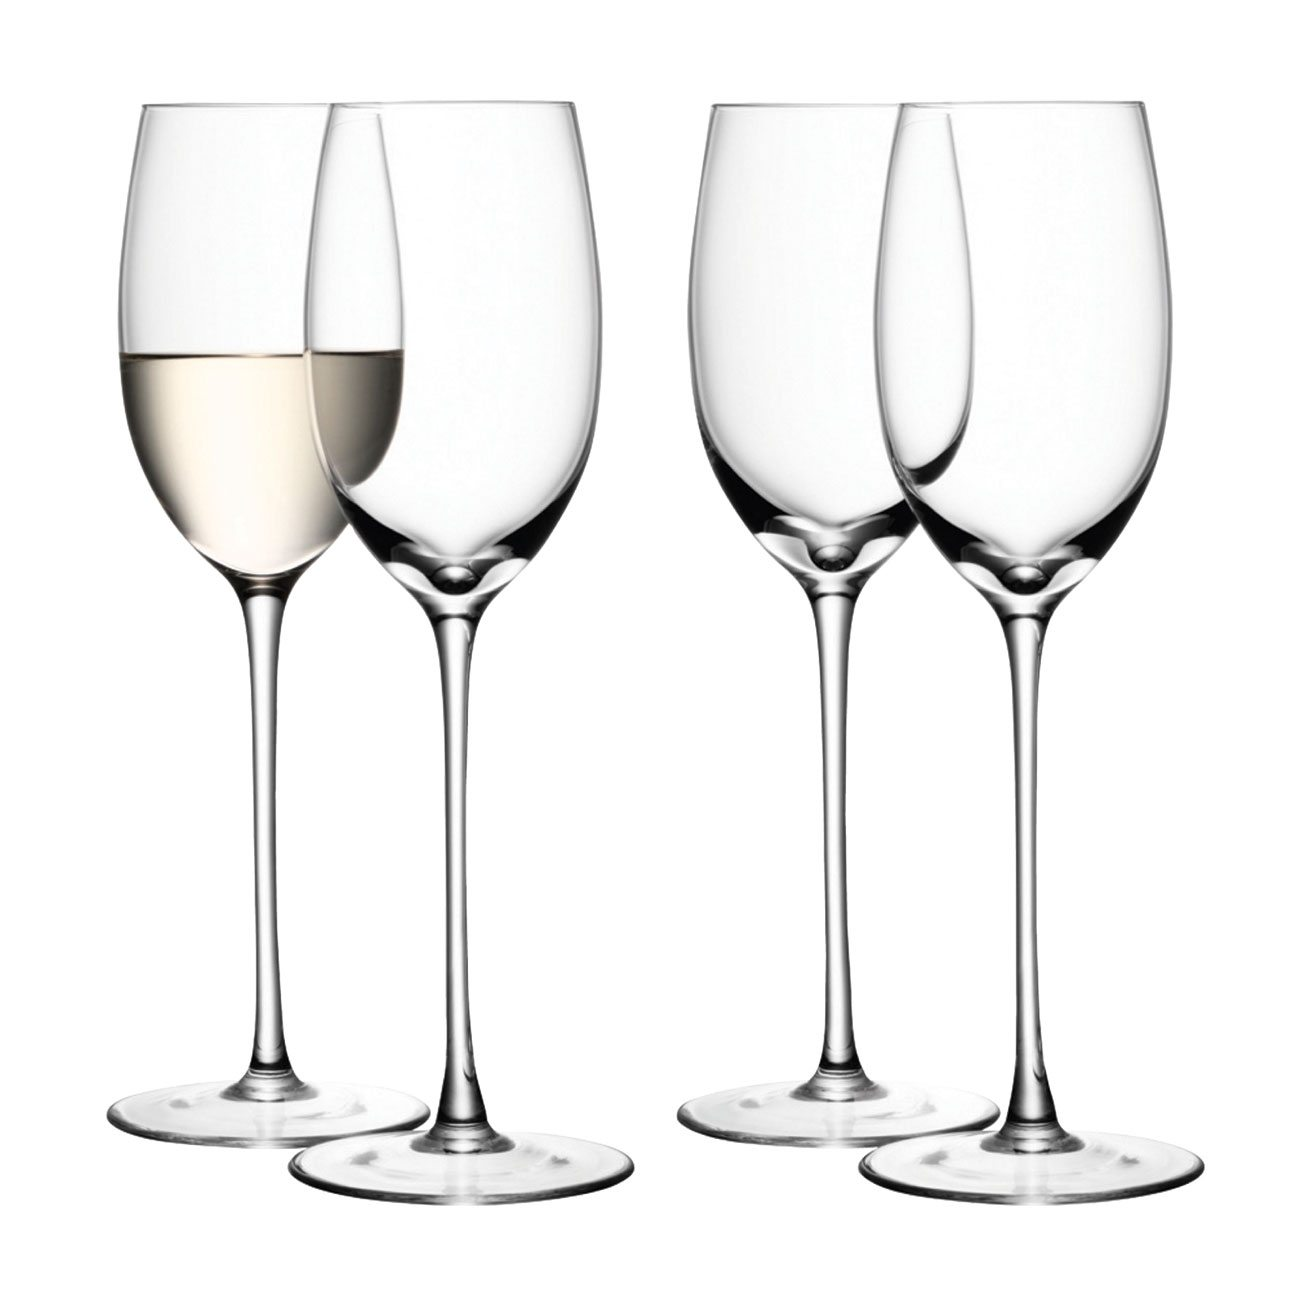 LSA International White Wine Glass, Set of 4